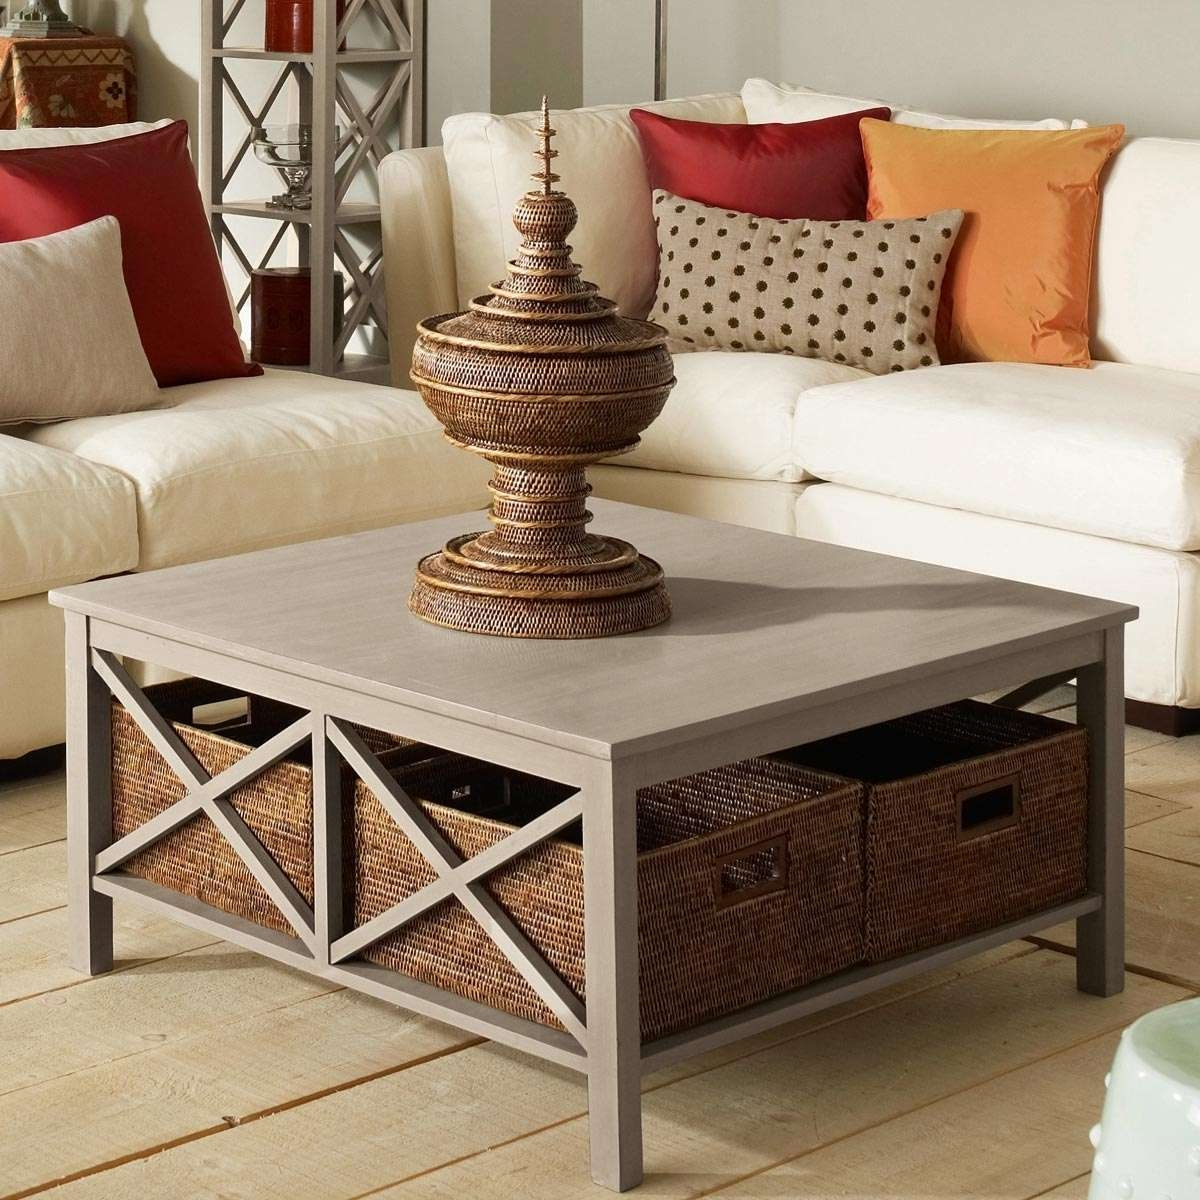 Widely Used Square Coffee Table Storages Pertaining To Square Coffee Table With Storage Coffee Tables Inside Coffee Table (View 20 of 20)